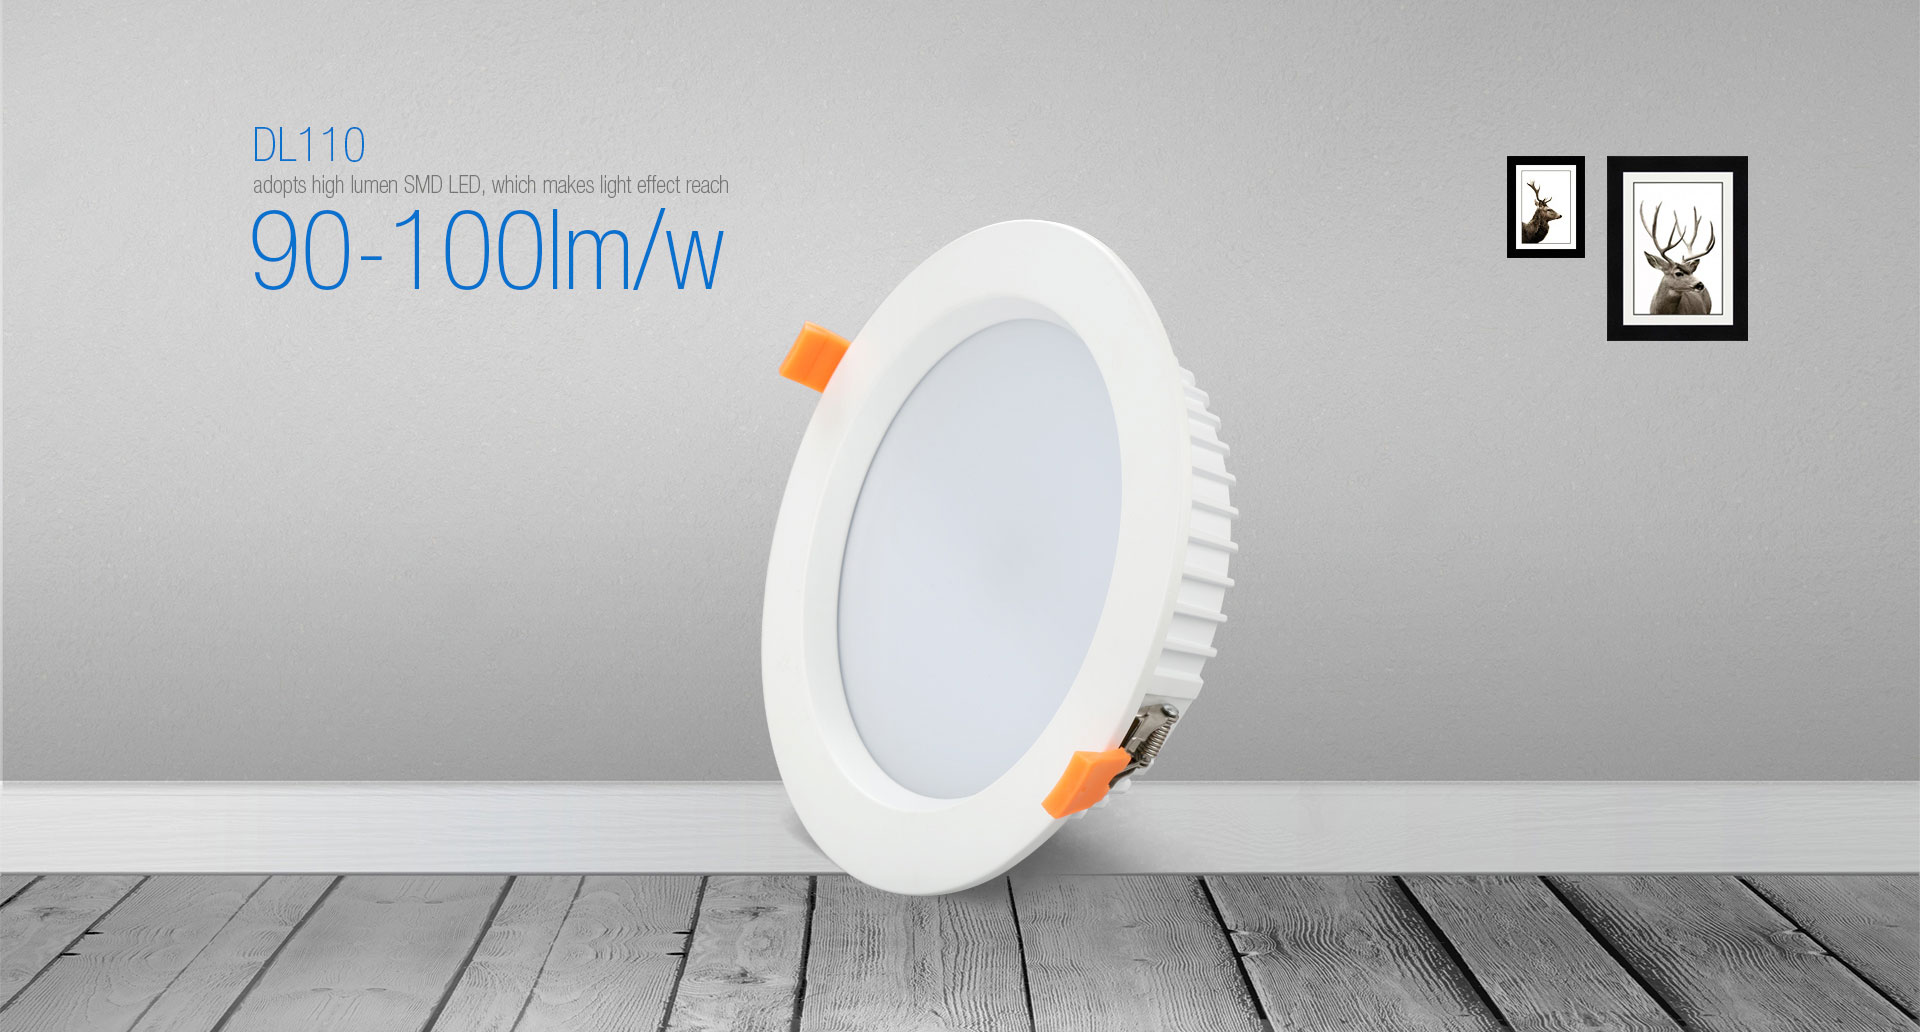 DL110 90 100lmw LED Recessed Downlights_01